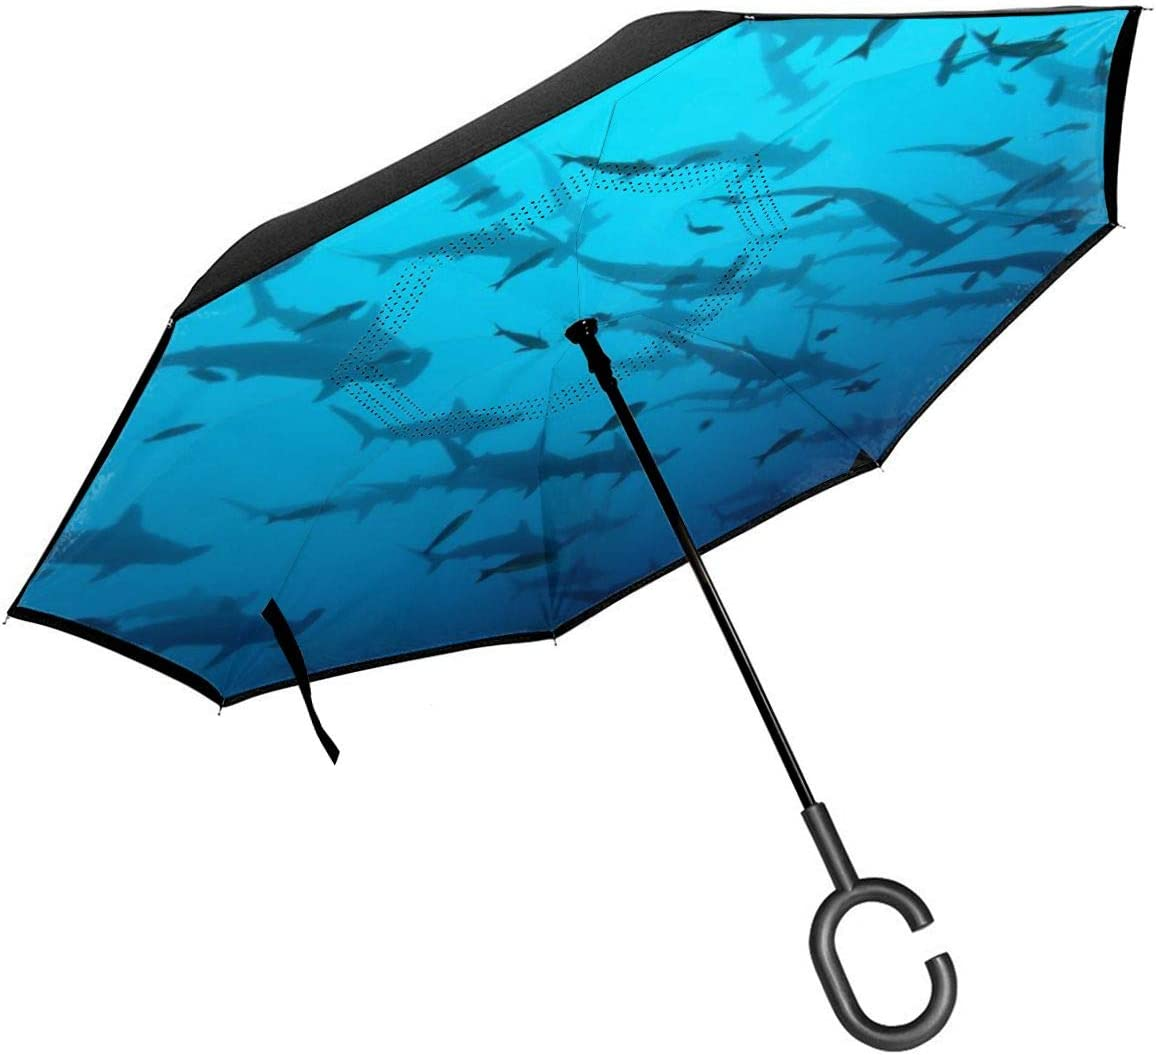 Folding Reverse Umbrella for Car Rain Outdoor Self Stand Upside Down with C-Shaped Handle PYFXSALA Shark Underwater Windproof Inverted Umbrella Double Layer UV Protection